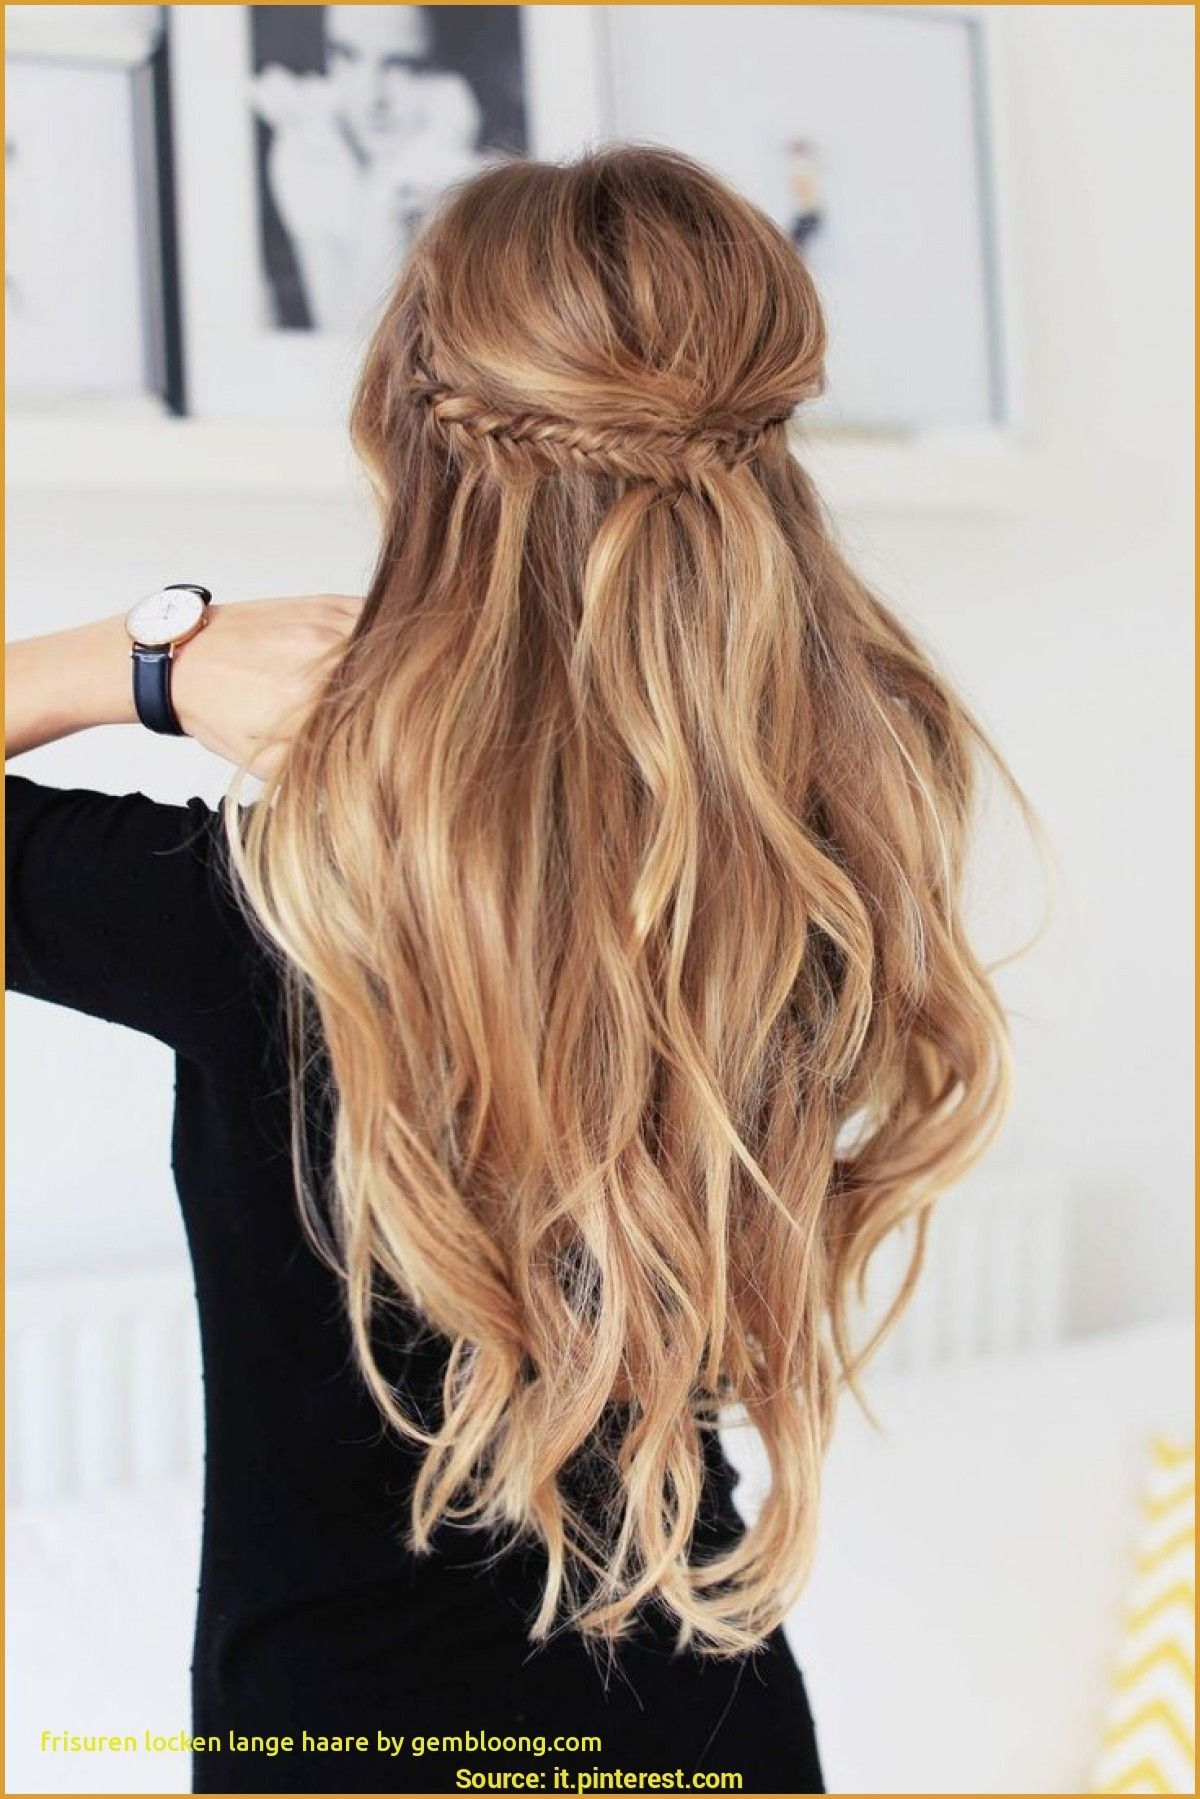 Frisuren Lange Haare Mit Locken Inspirational Frisuren Locken Lange